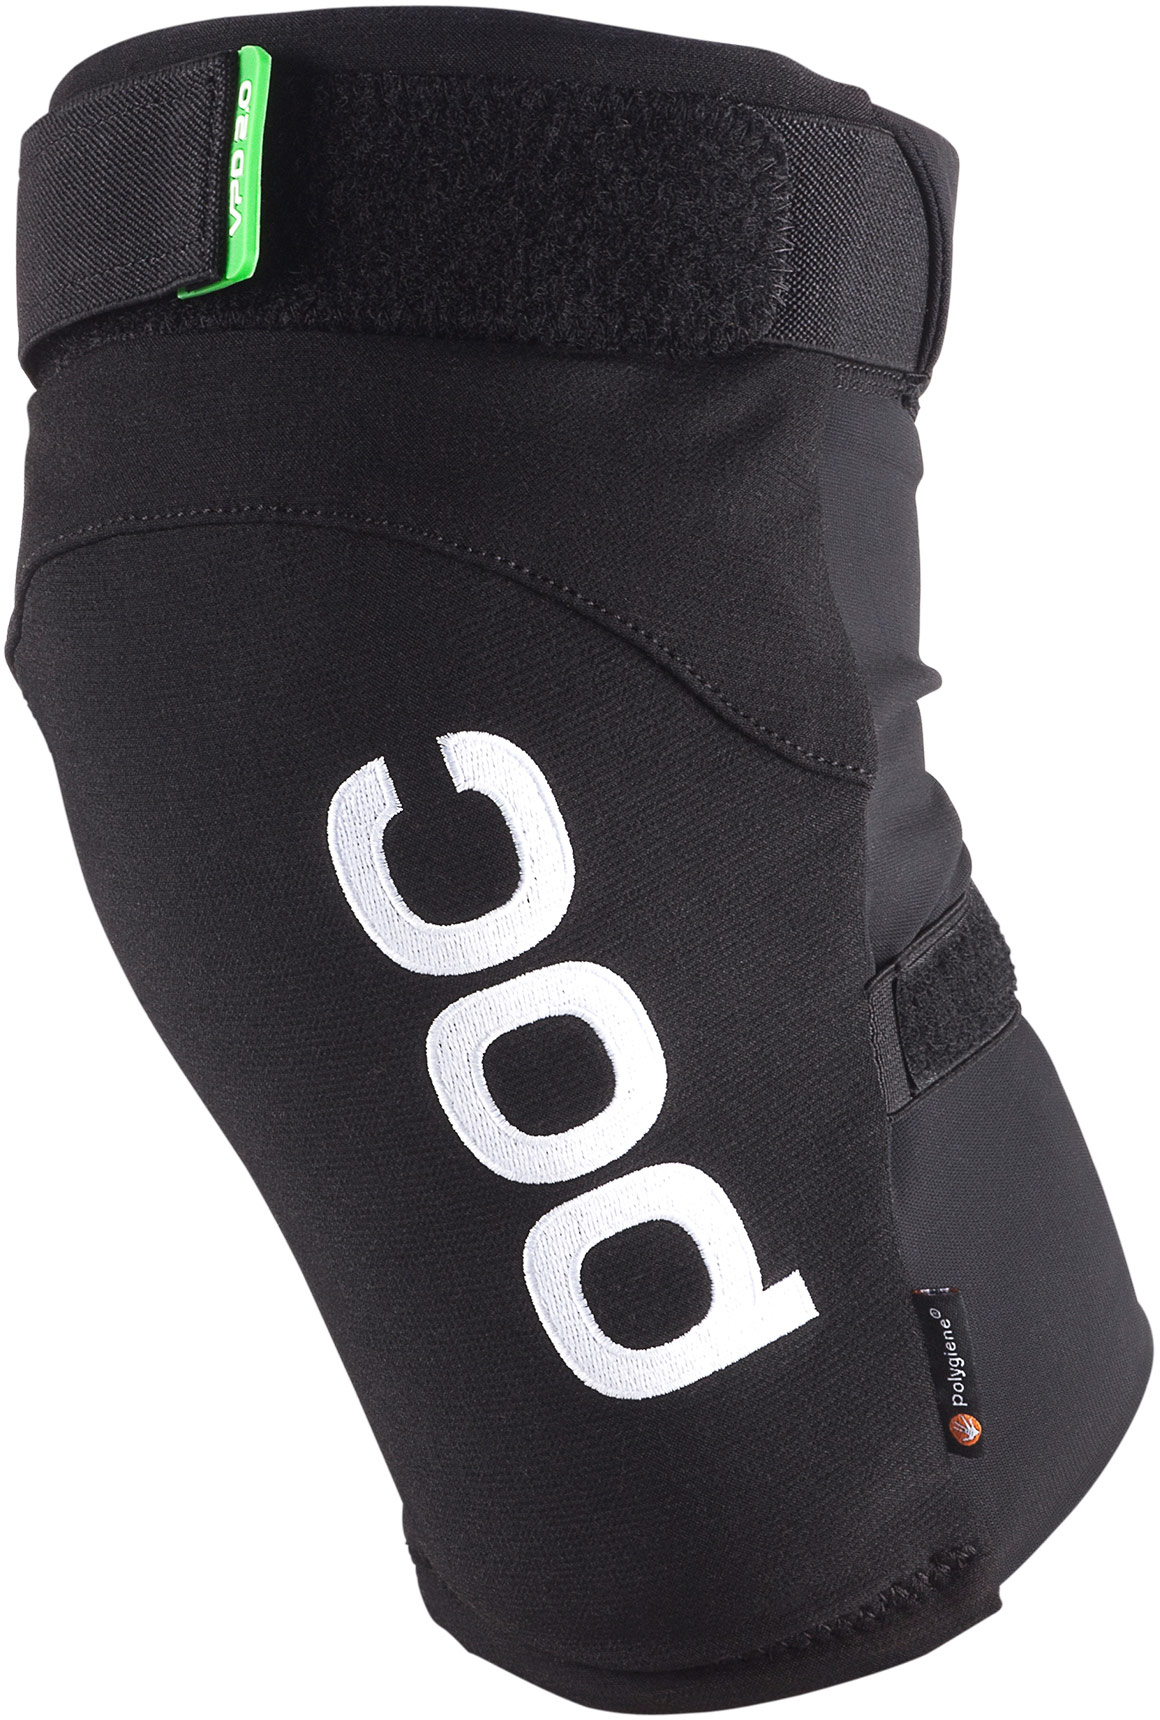 POC Joint VPD 2.0 Knee Armour | Amour